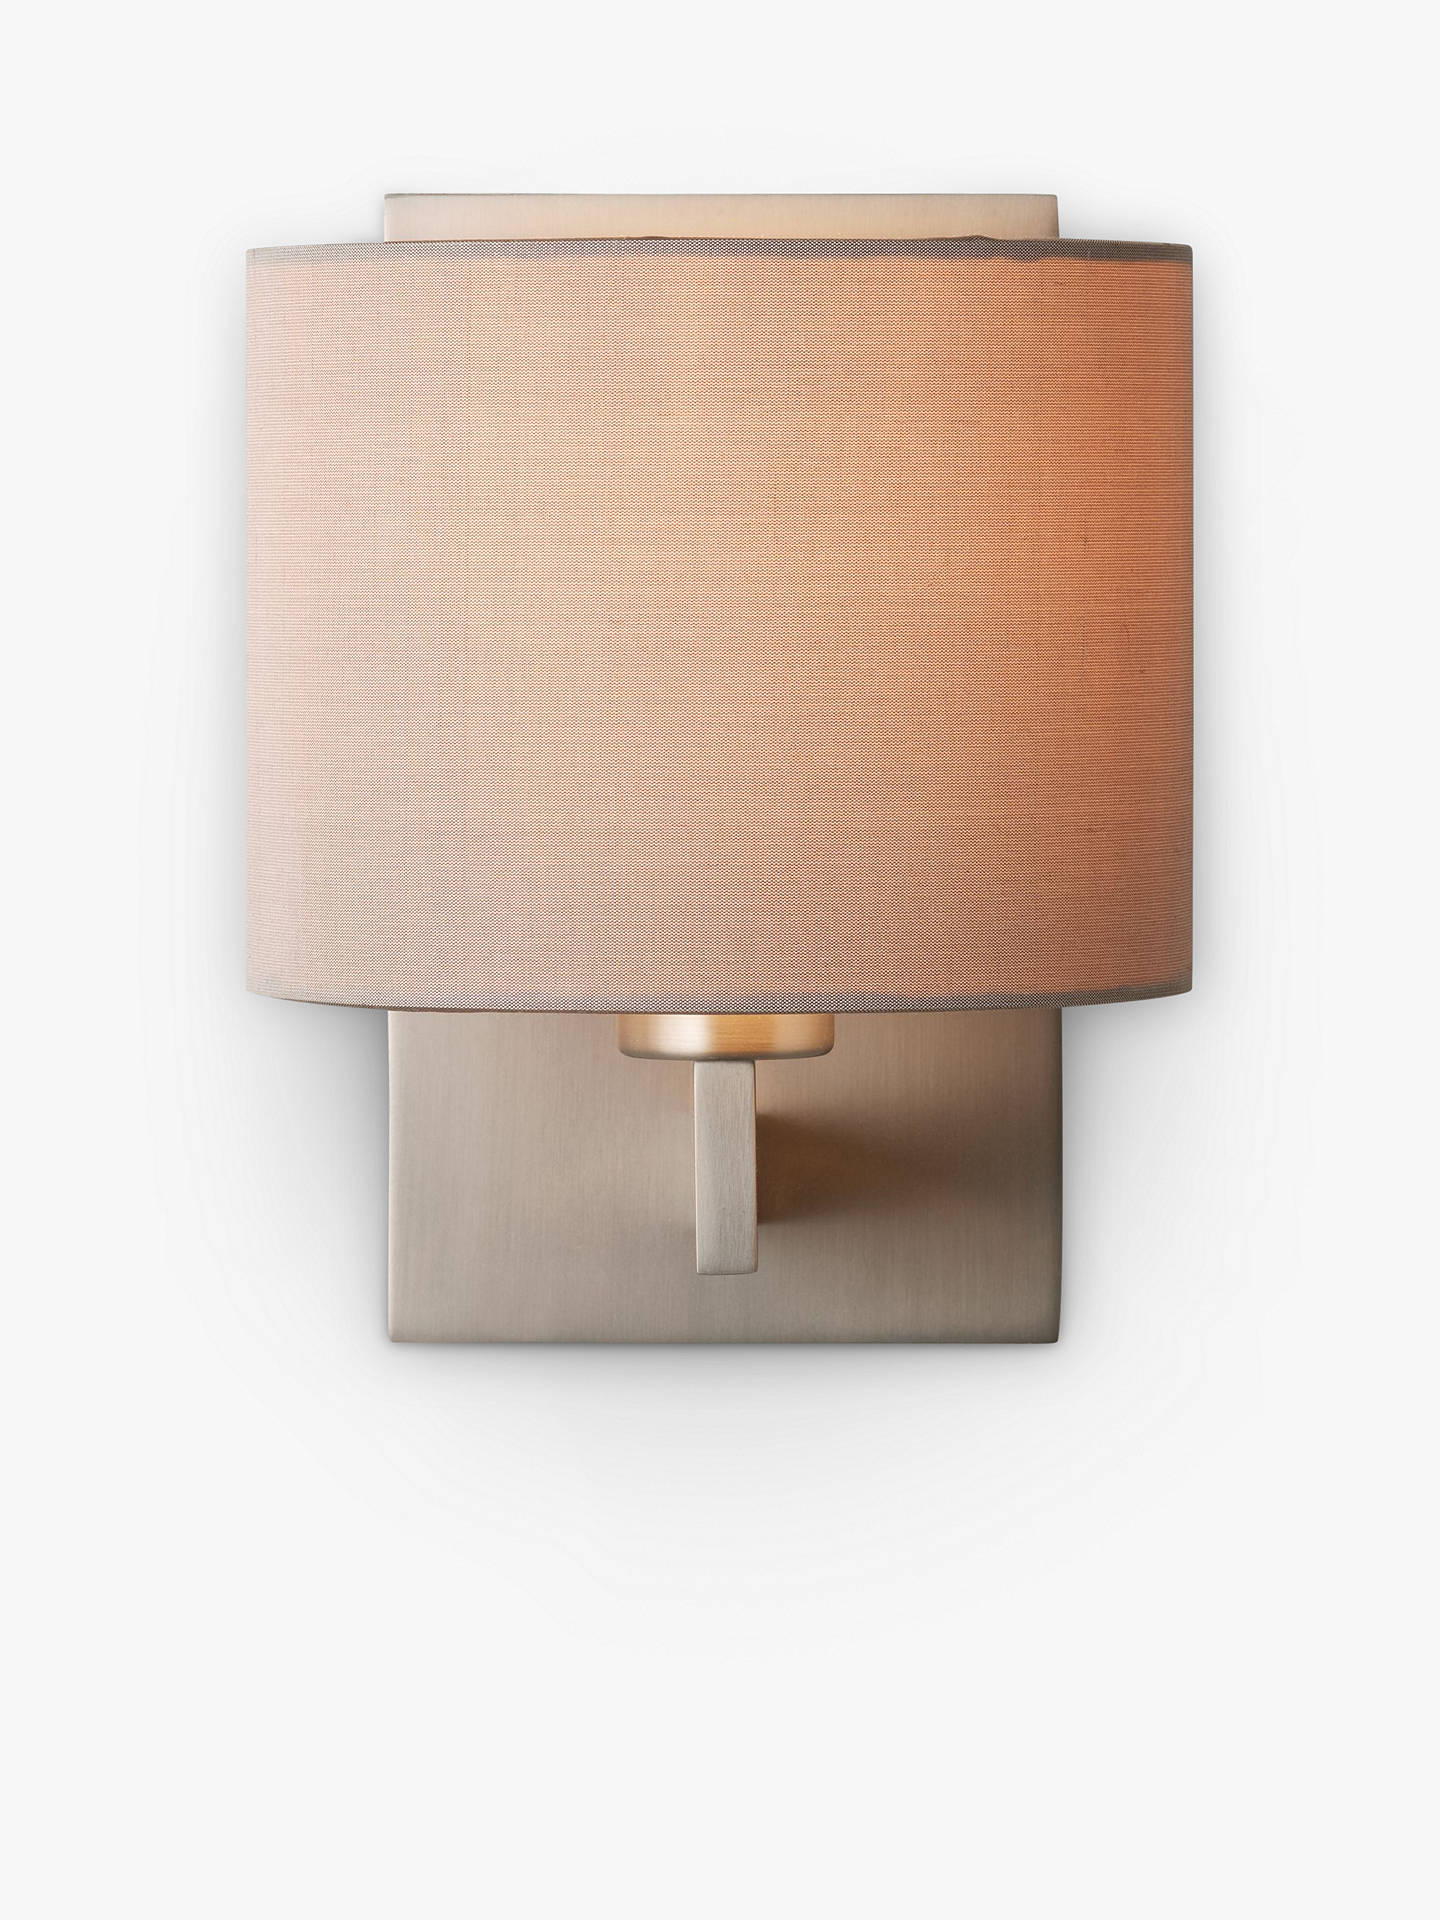 Astro olan wall light with silk shade nickeloyster at john lewis buyastro olan wall light with silk shade nickeloyster online at johnlewis aloadofball Image collections